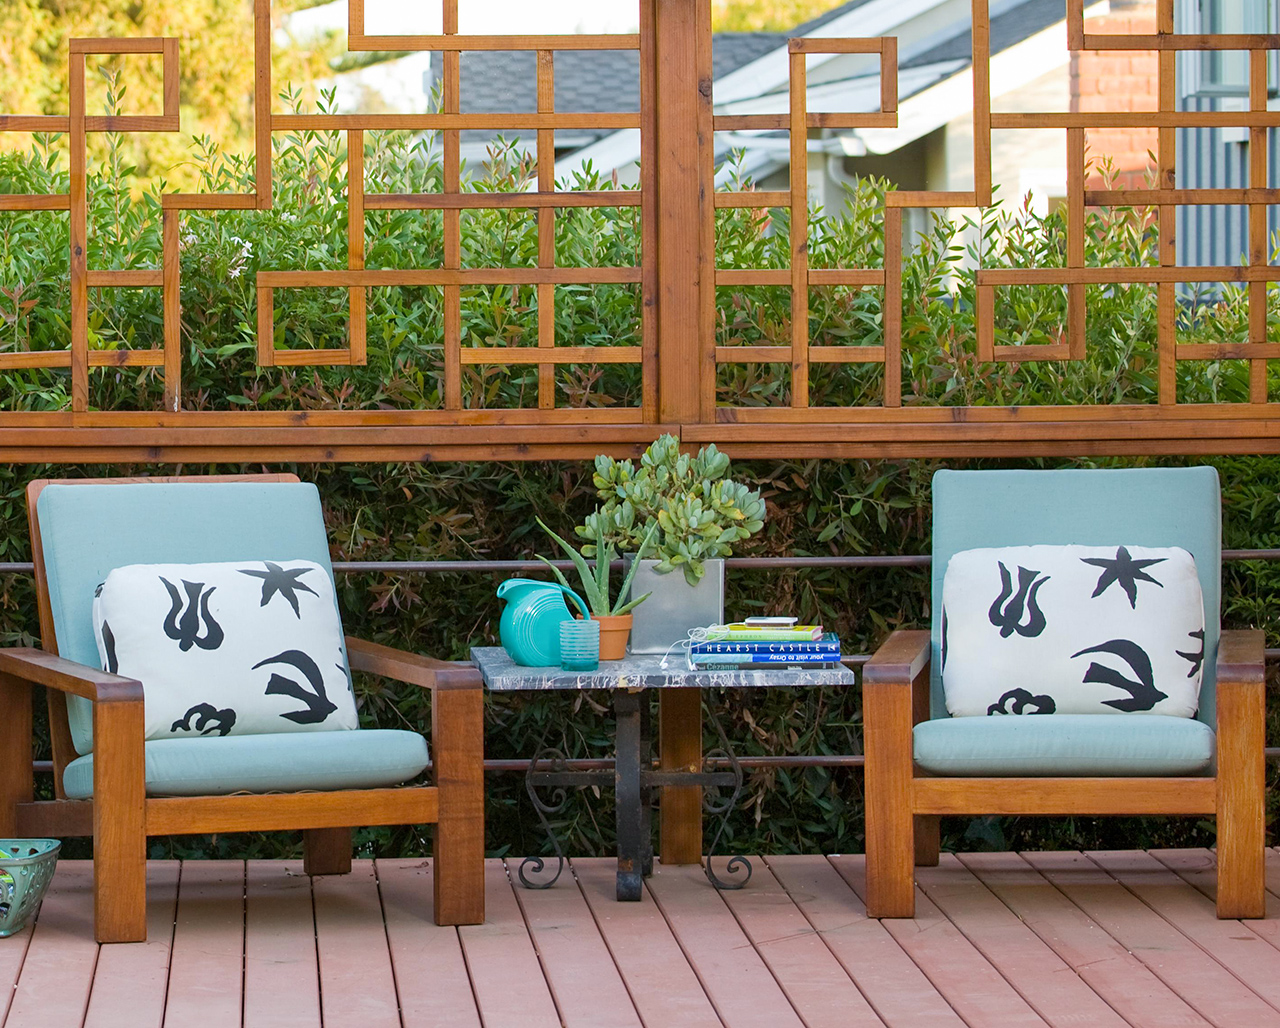 two light-blue cushioned chairs in front of upper railing wood design on deck